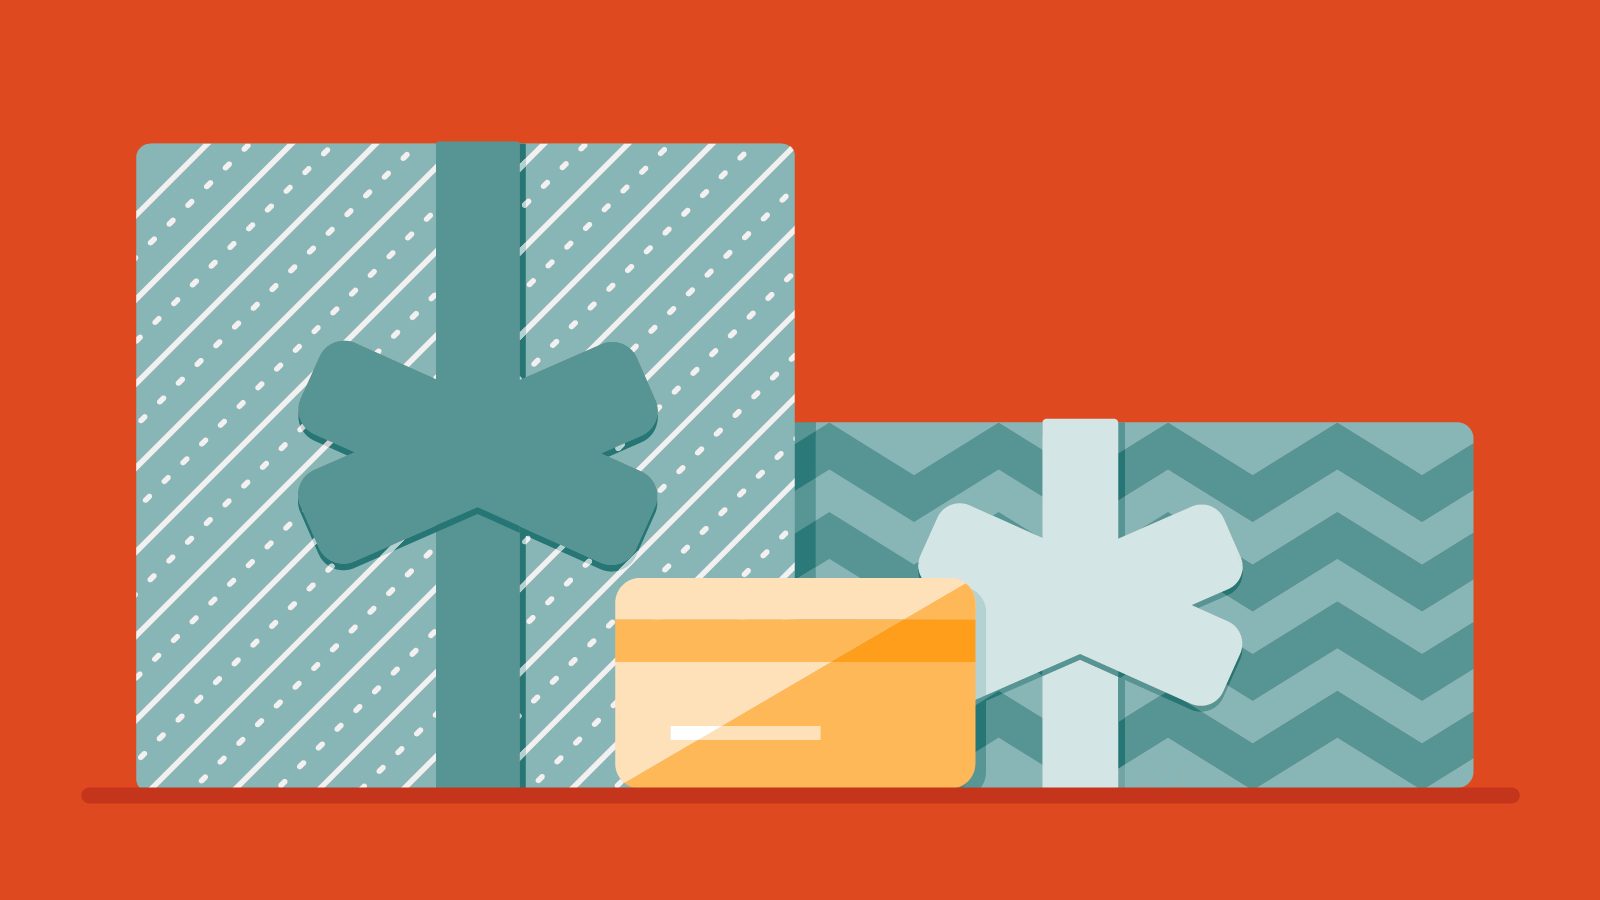 Wrapped gifts and a credit card